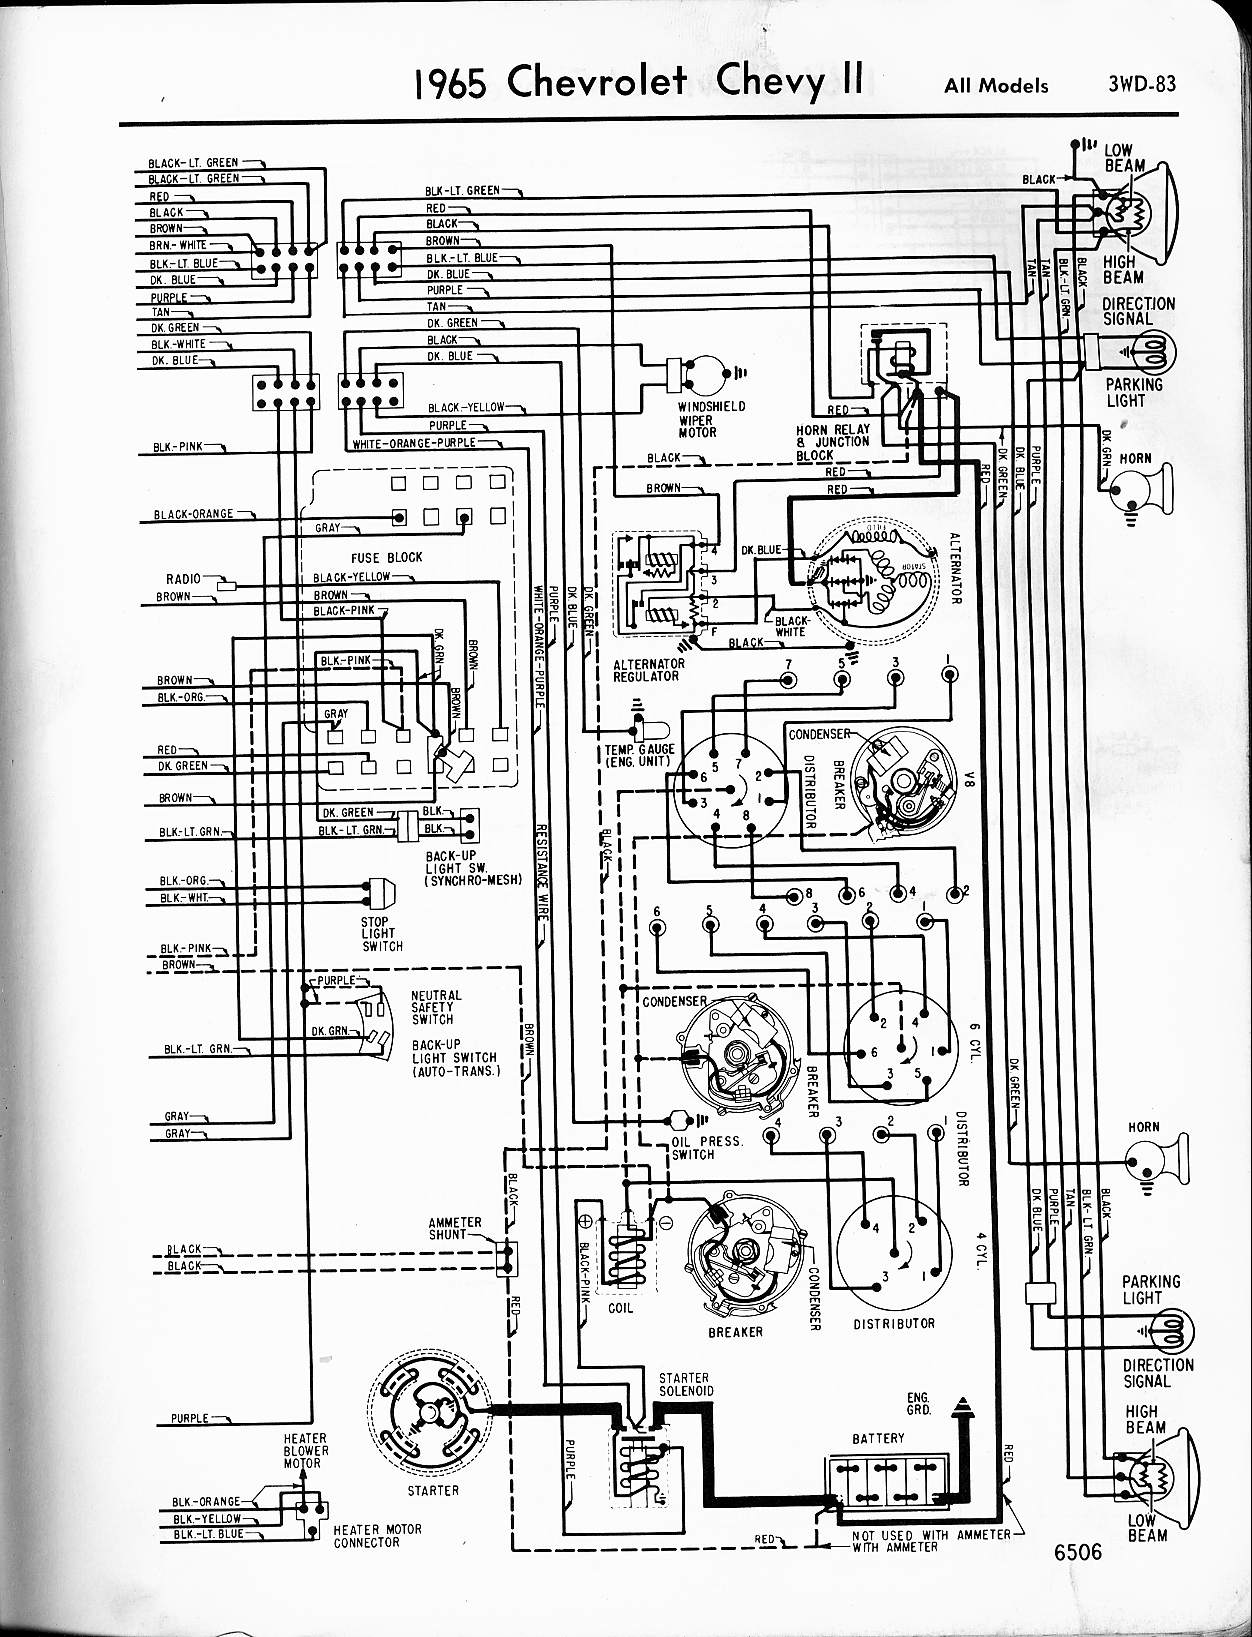 MWireChev65_3WD 083 chevy diagrams 65 chevy wiring harness at readyjetset.co